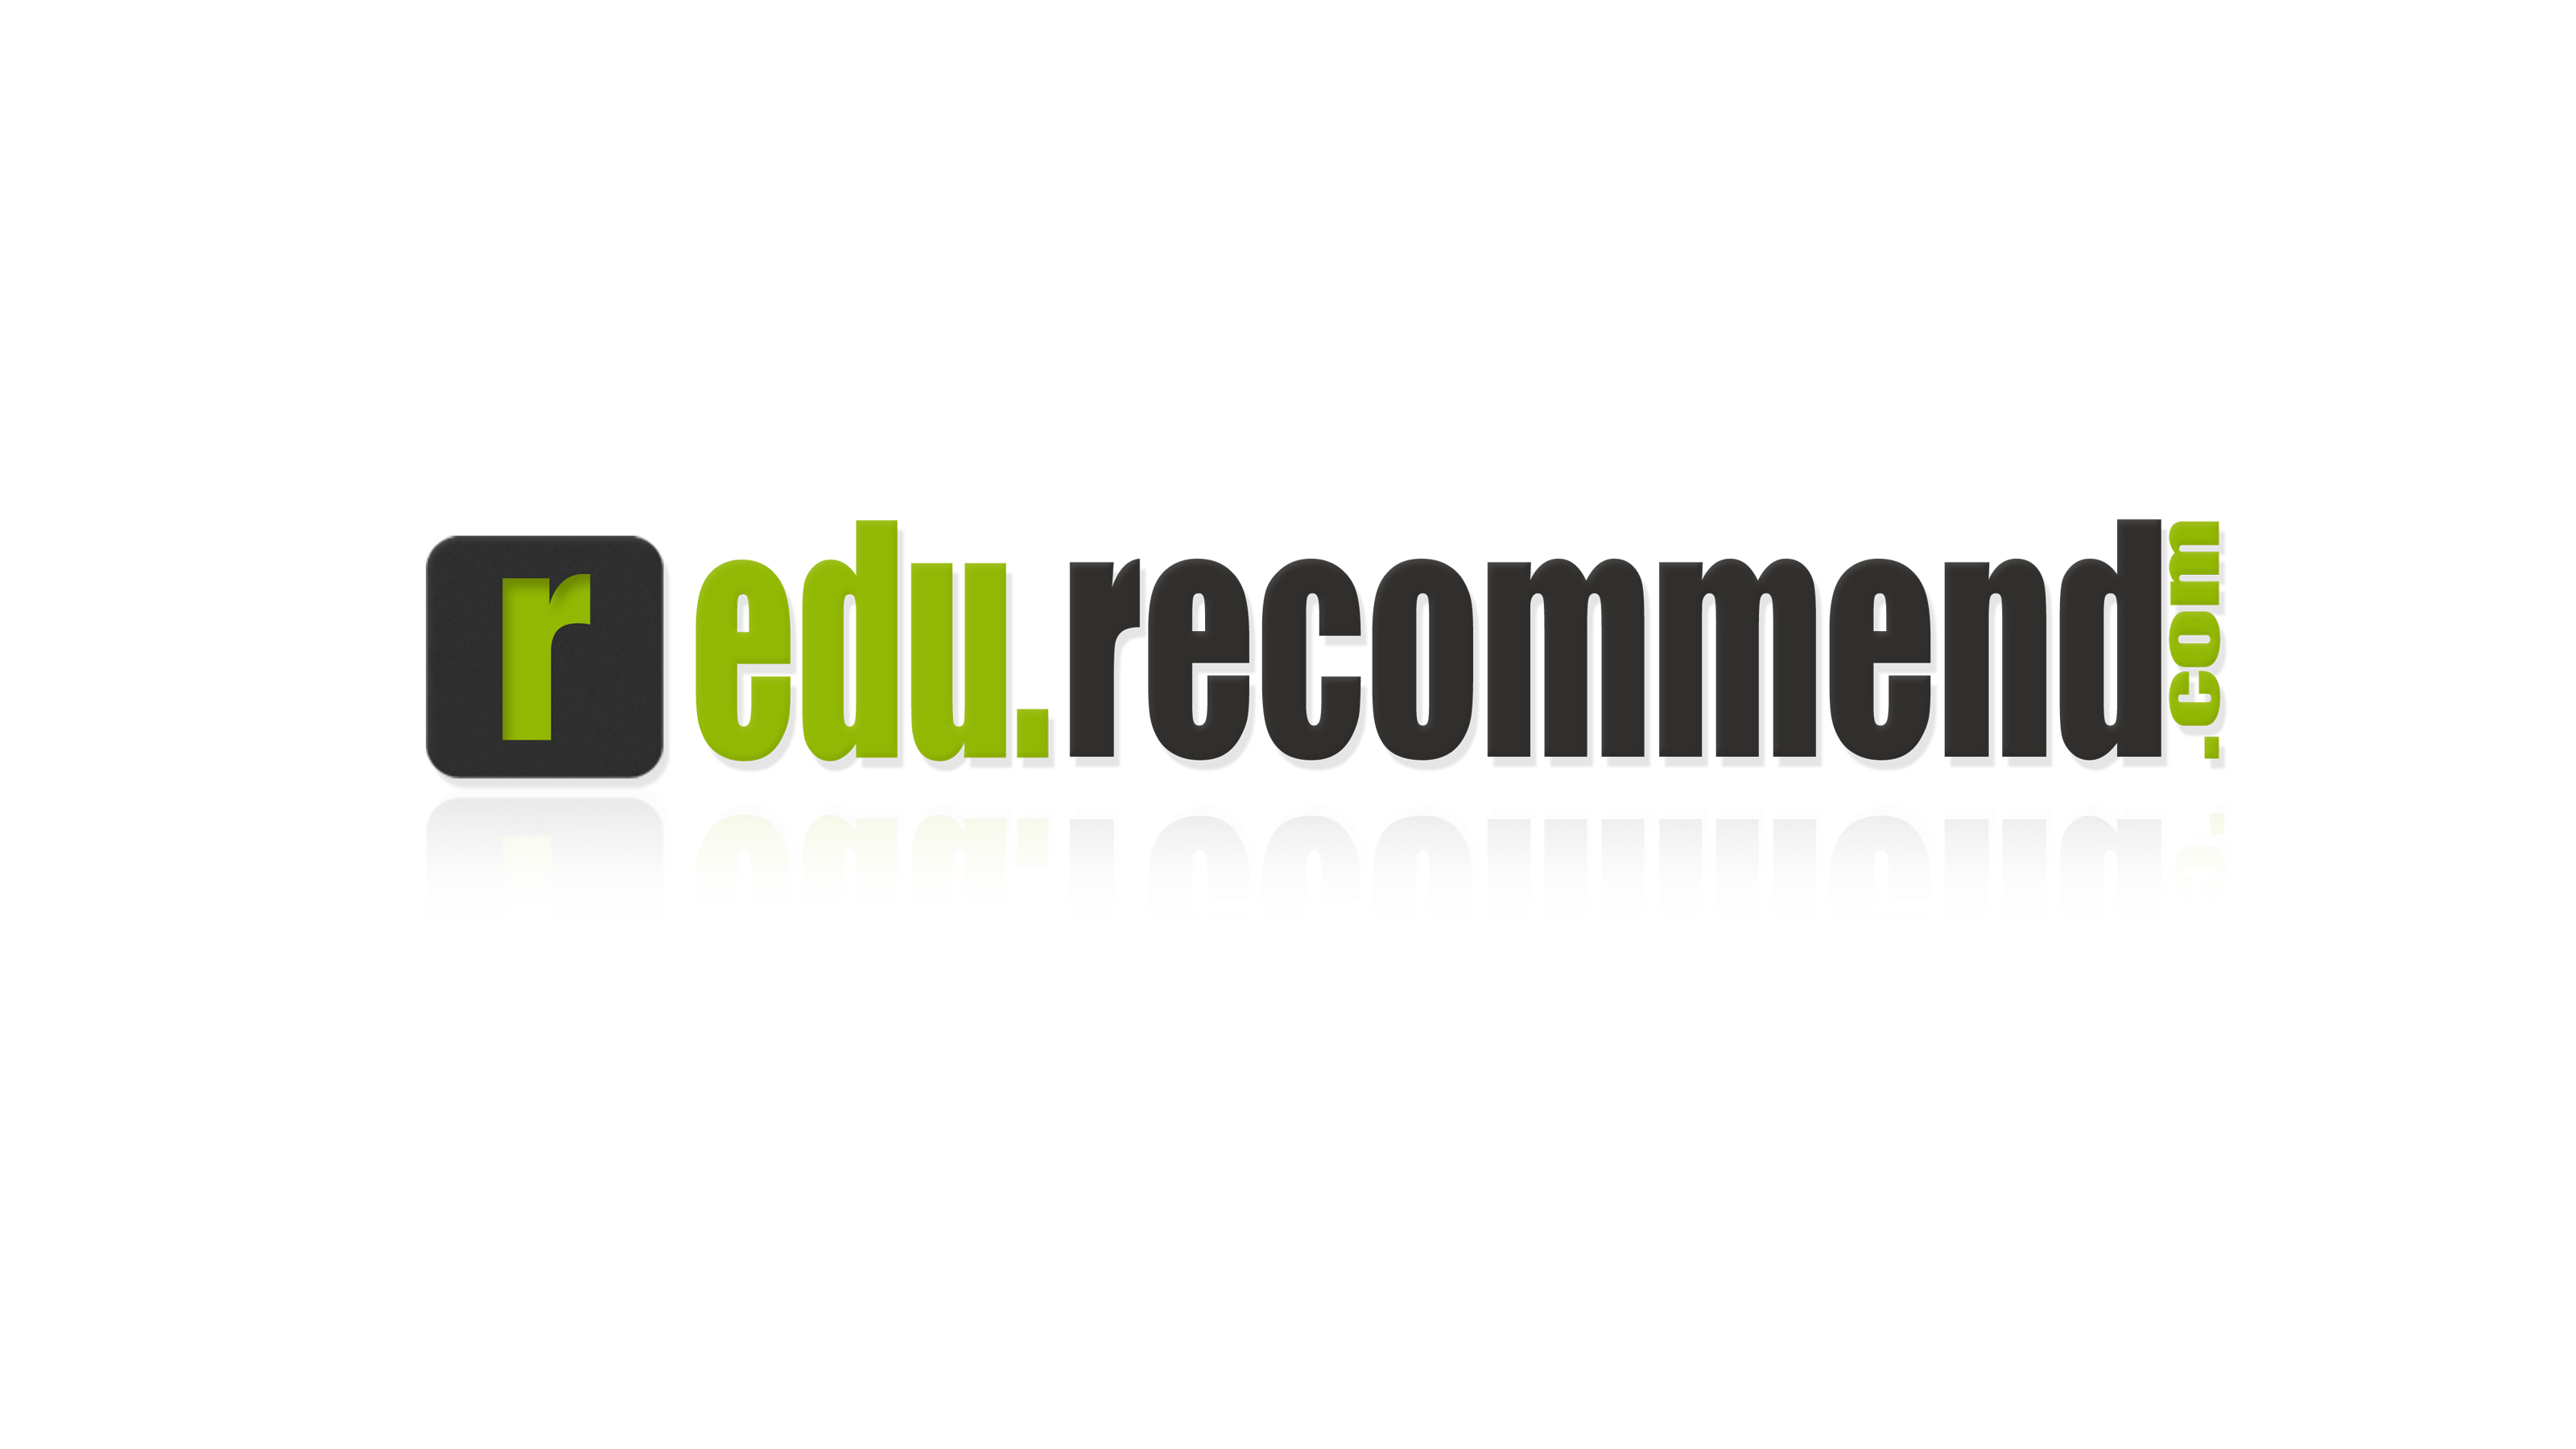 Recommend Education